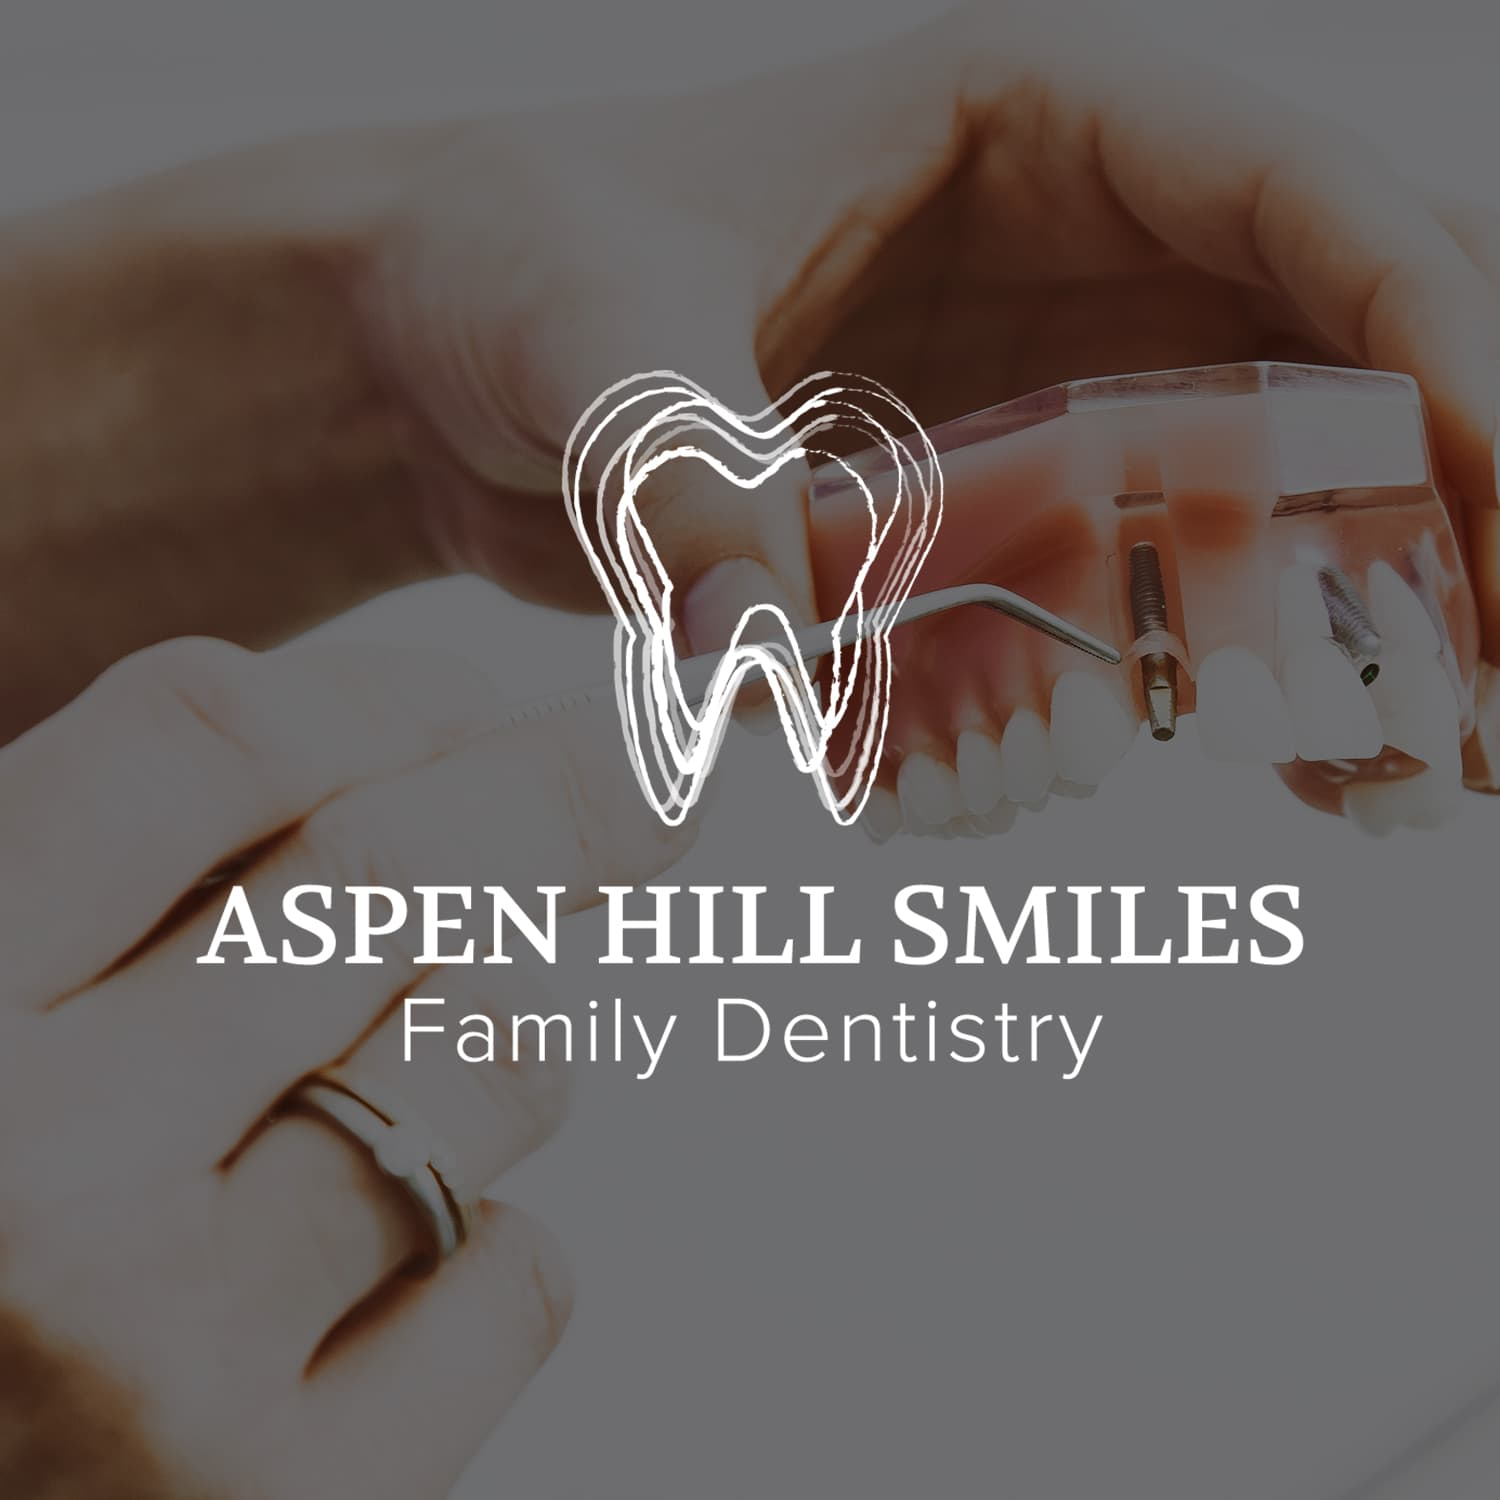 Aspen Hill Smiles Logo Display.jpg